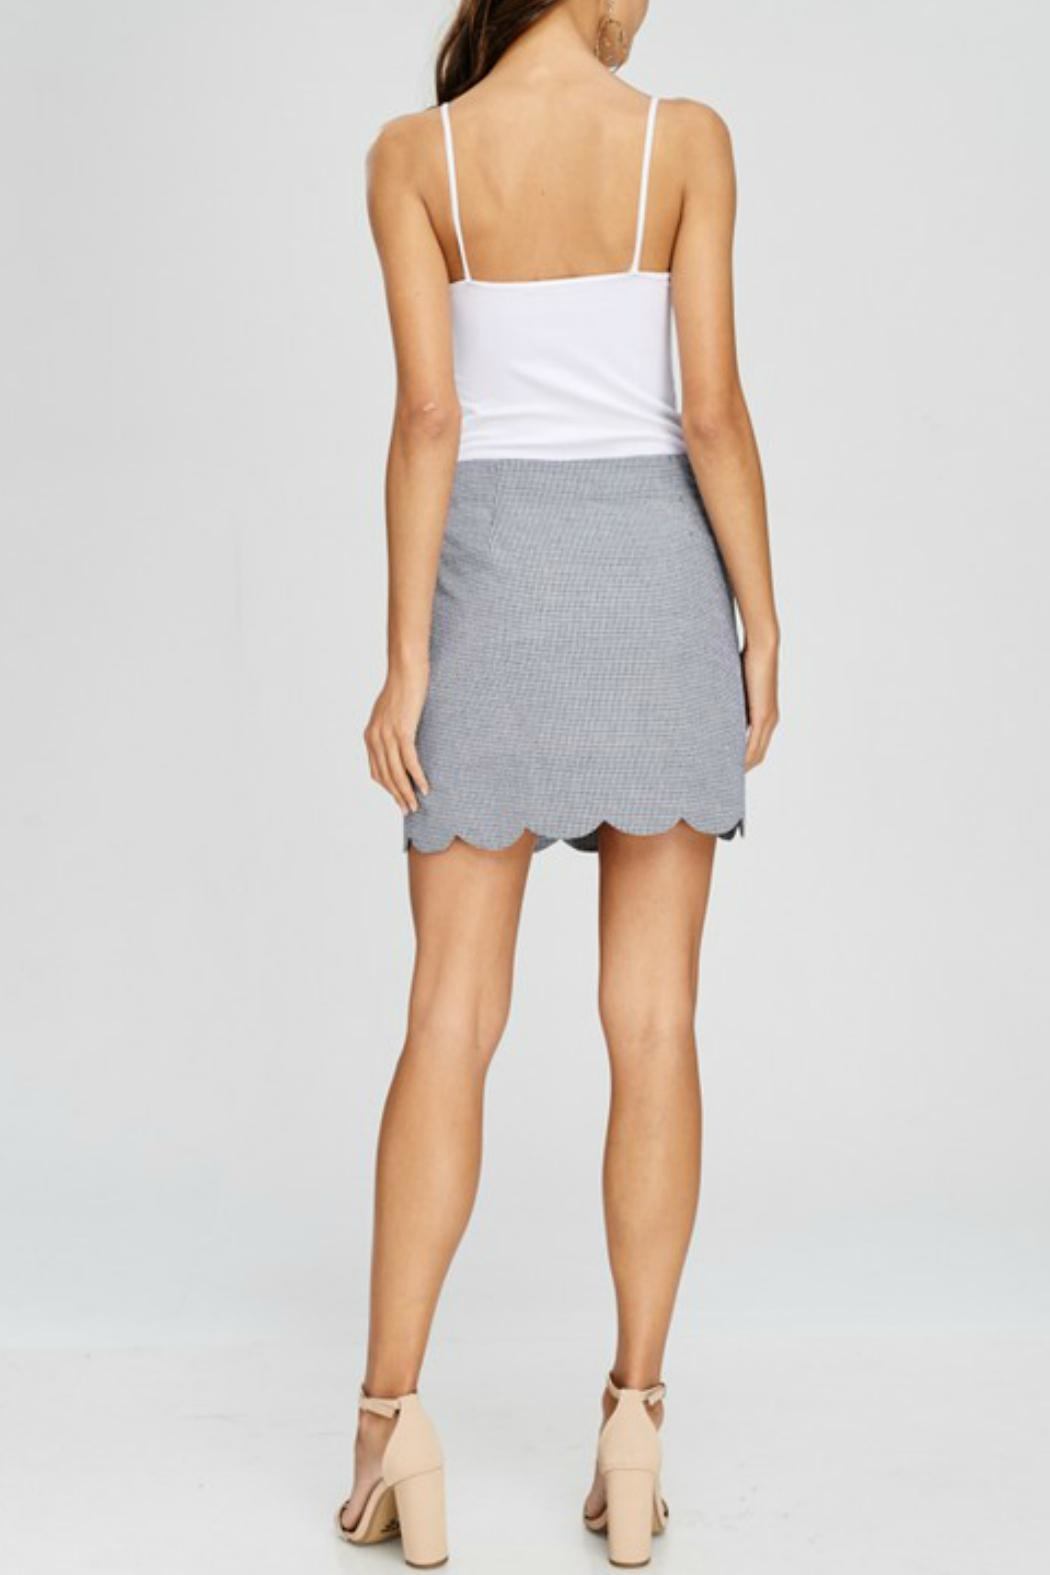 Papermoon Gingham Scalloped Skirt - Side Cropped Image